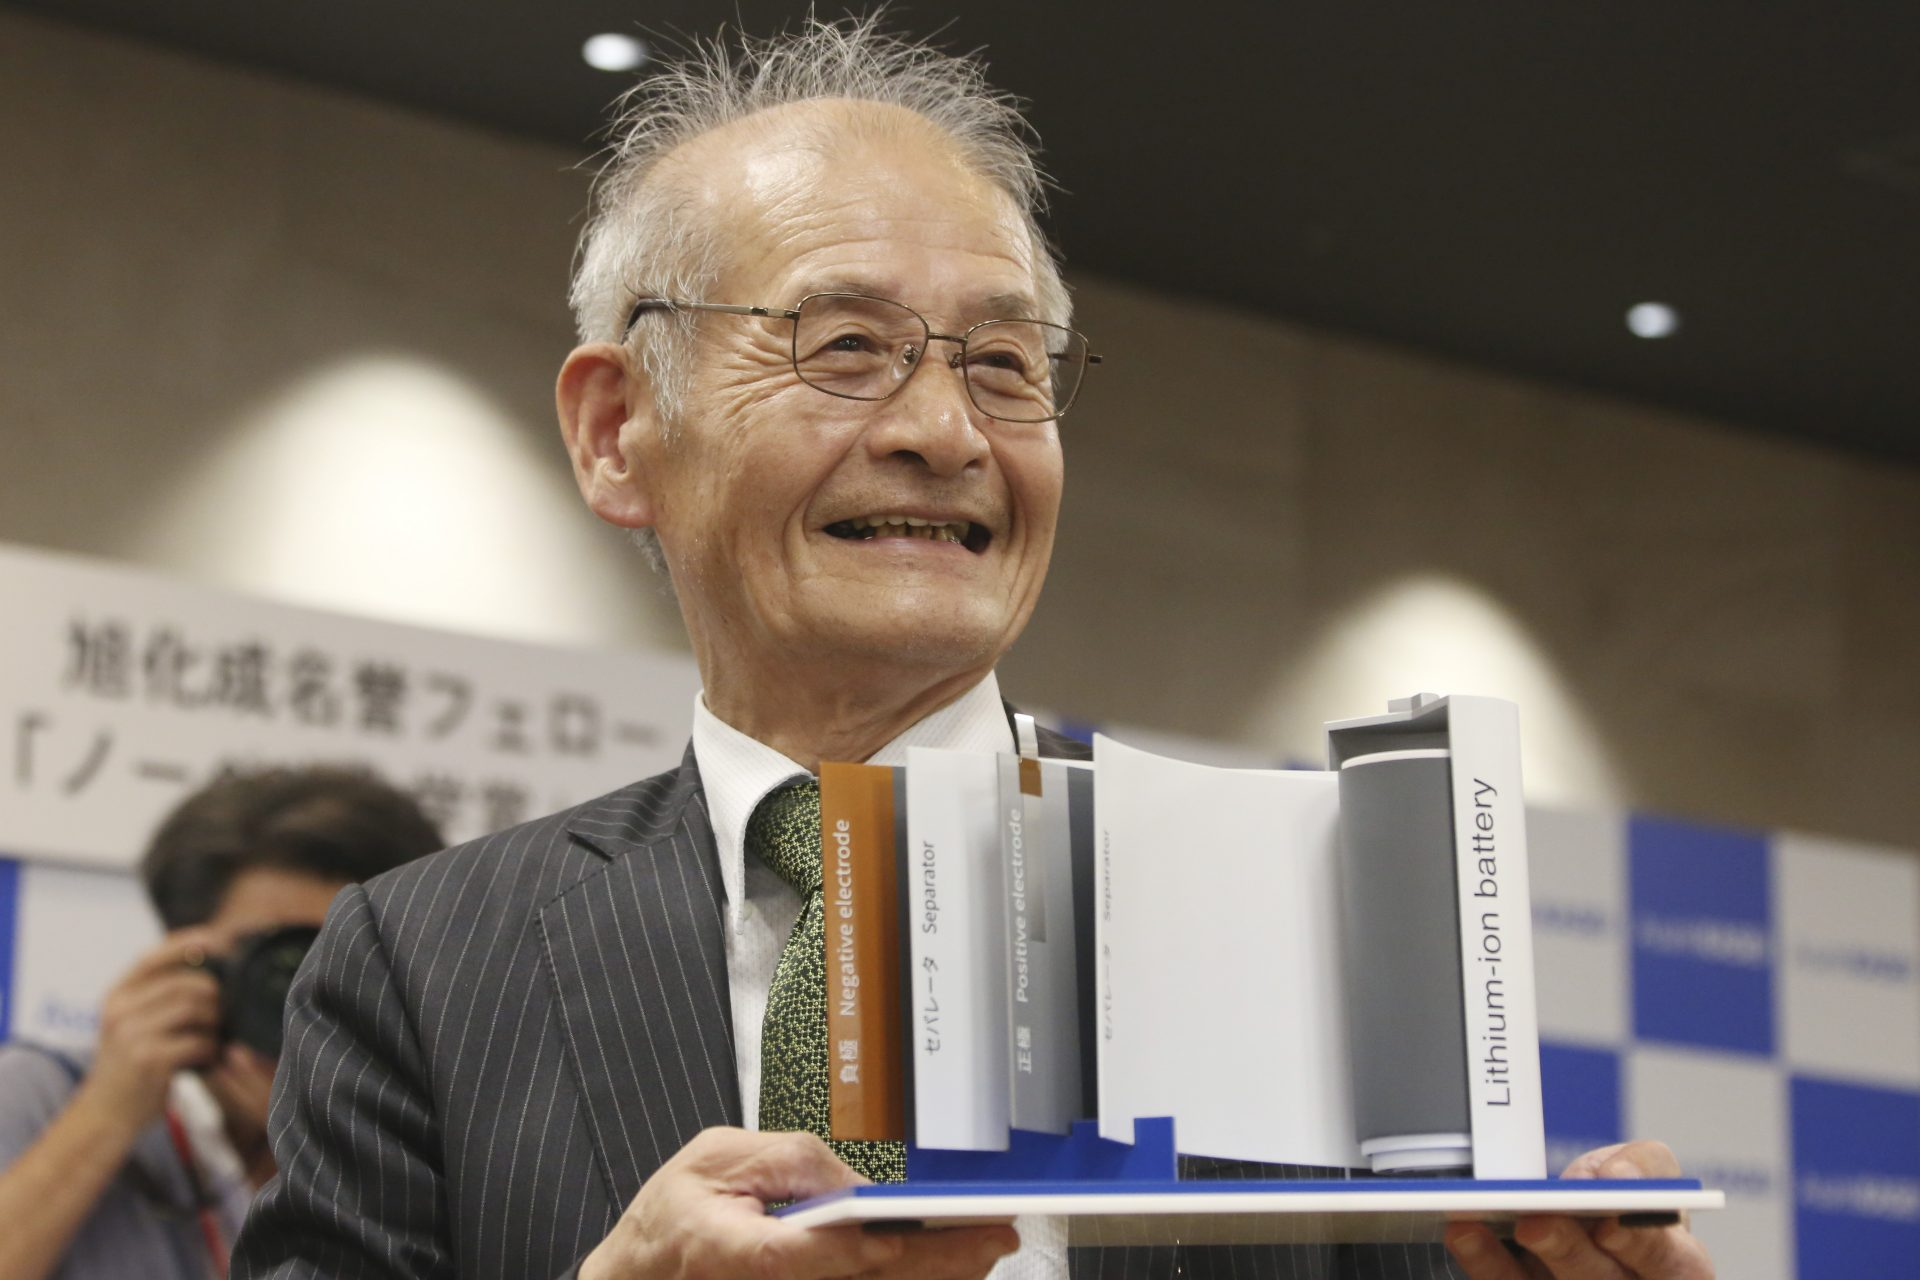 Winner of Nobel Prize in Chemistry Akira Yoshino poses a photo with a model of Lithium-ion battery during a press conference in Tokyo, Wednesday, Oct. 9, 2019. Yoshino is one of the three scientists who have won this year's Nobel Prize in Chemistry for their contributions to lithium-ion batteries, which have reshaped energy storage and transformed cars, mobile phones and many other devices in an increasingly portable and electronic world.